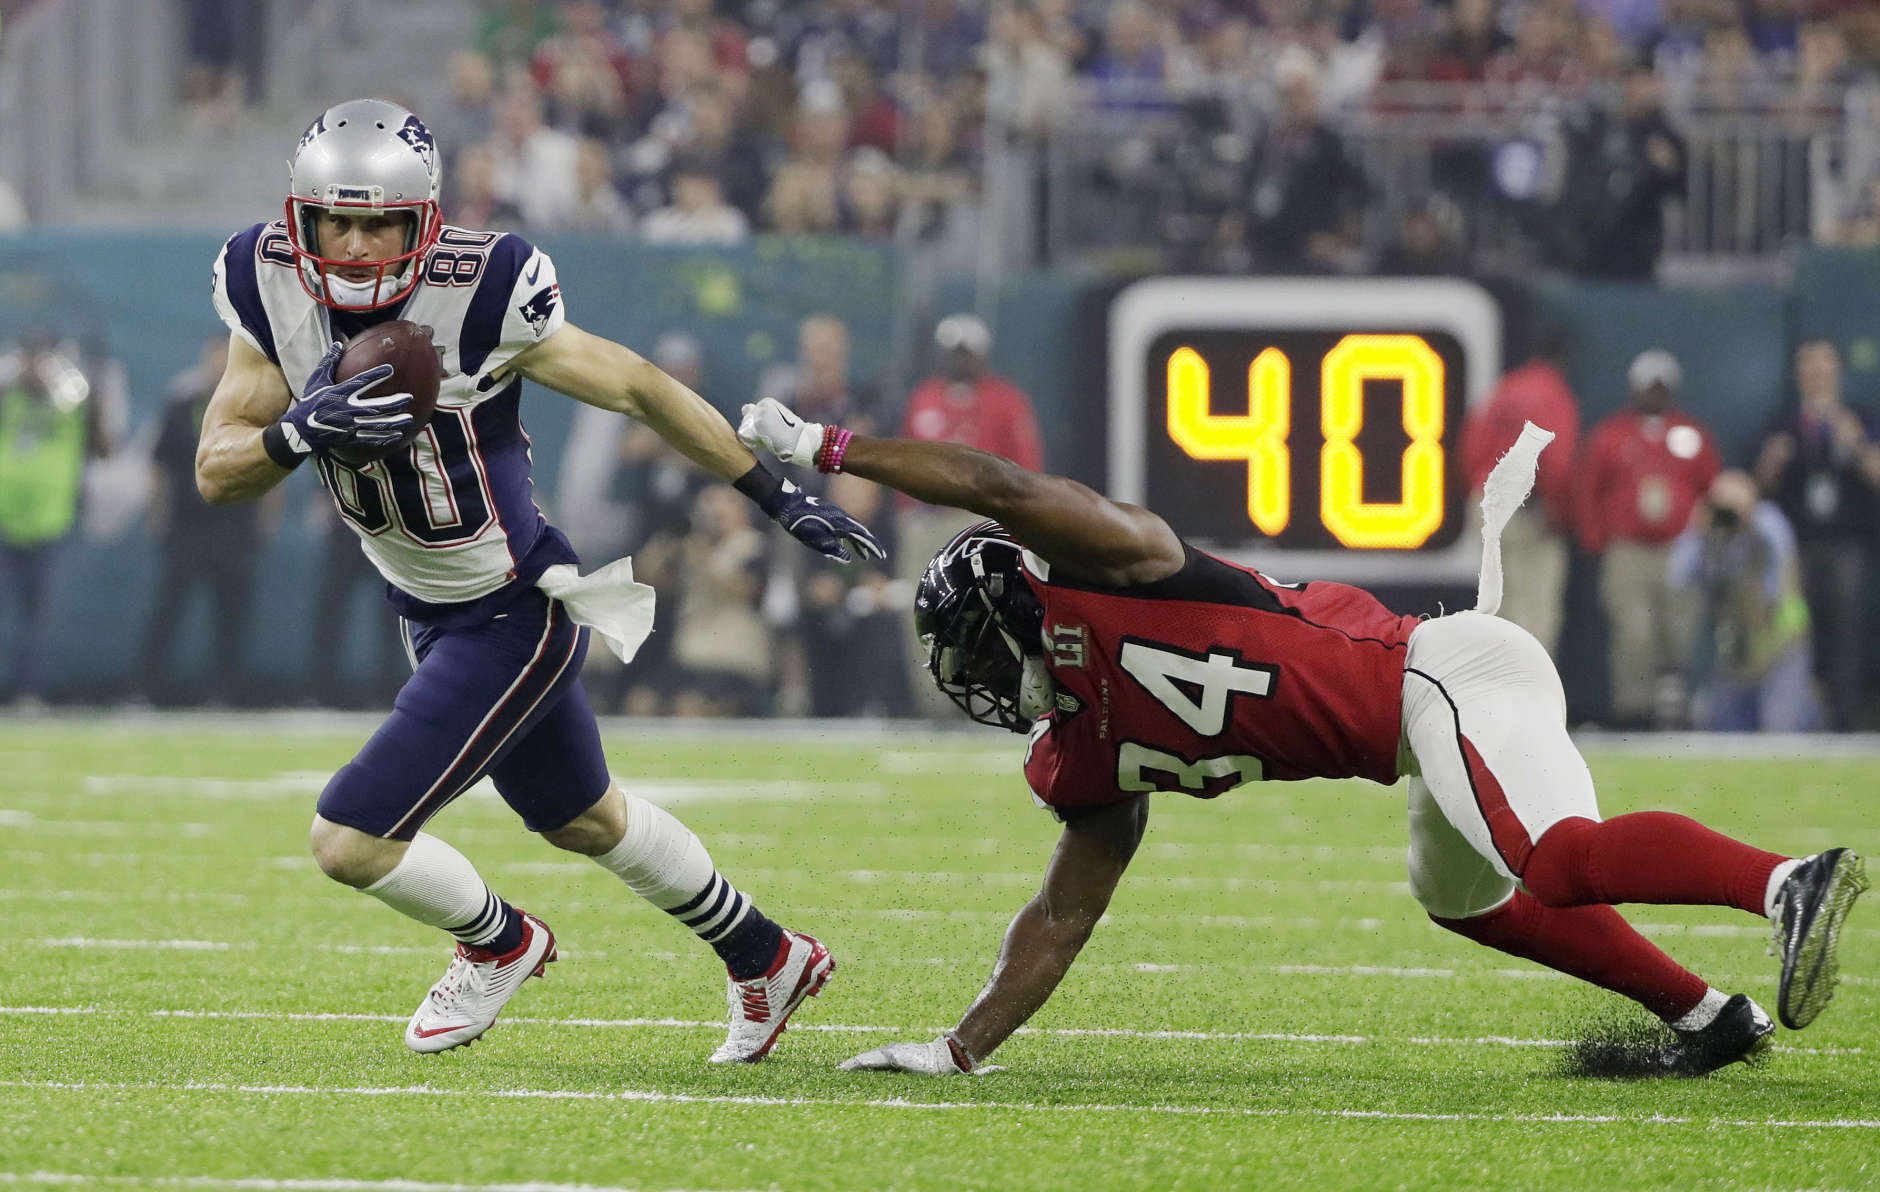 New England Patriots' Danny Amendola runs against Atlanta Falcons' Brian Poole during the second half of the NFL Super Bowl 51 football game Sunday, Feb. 5, 2017, in Houston. (AP Photo/Mark Humphrey)